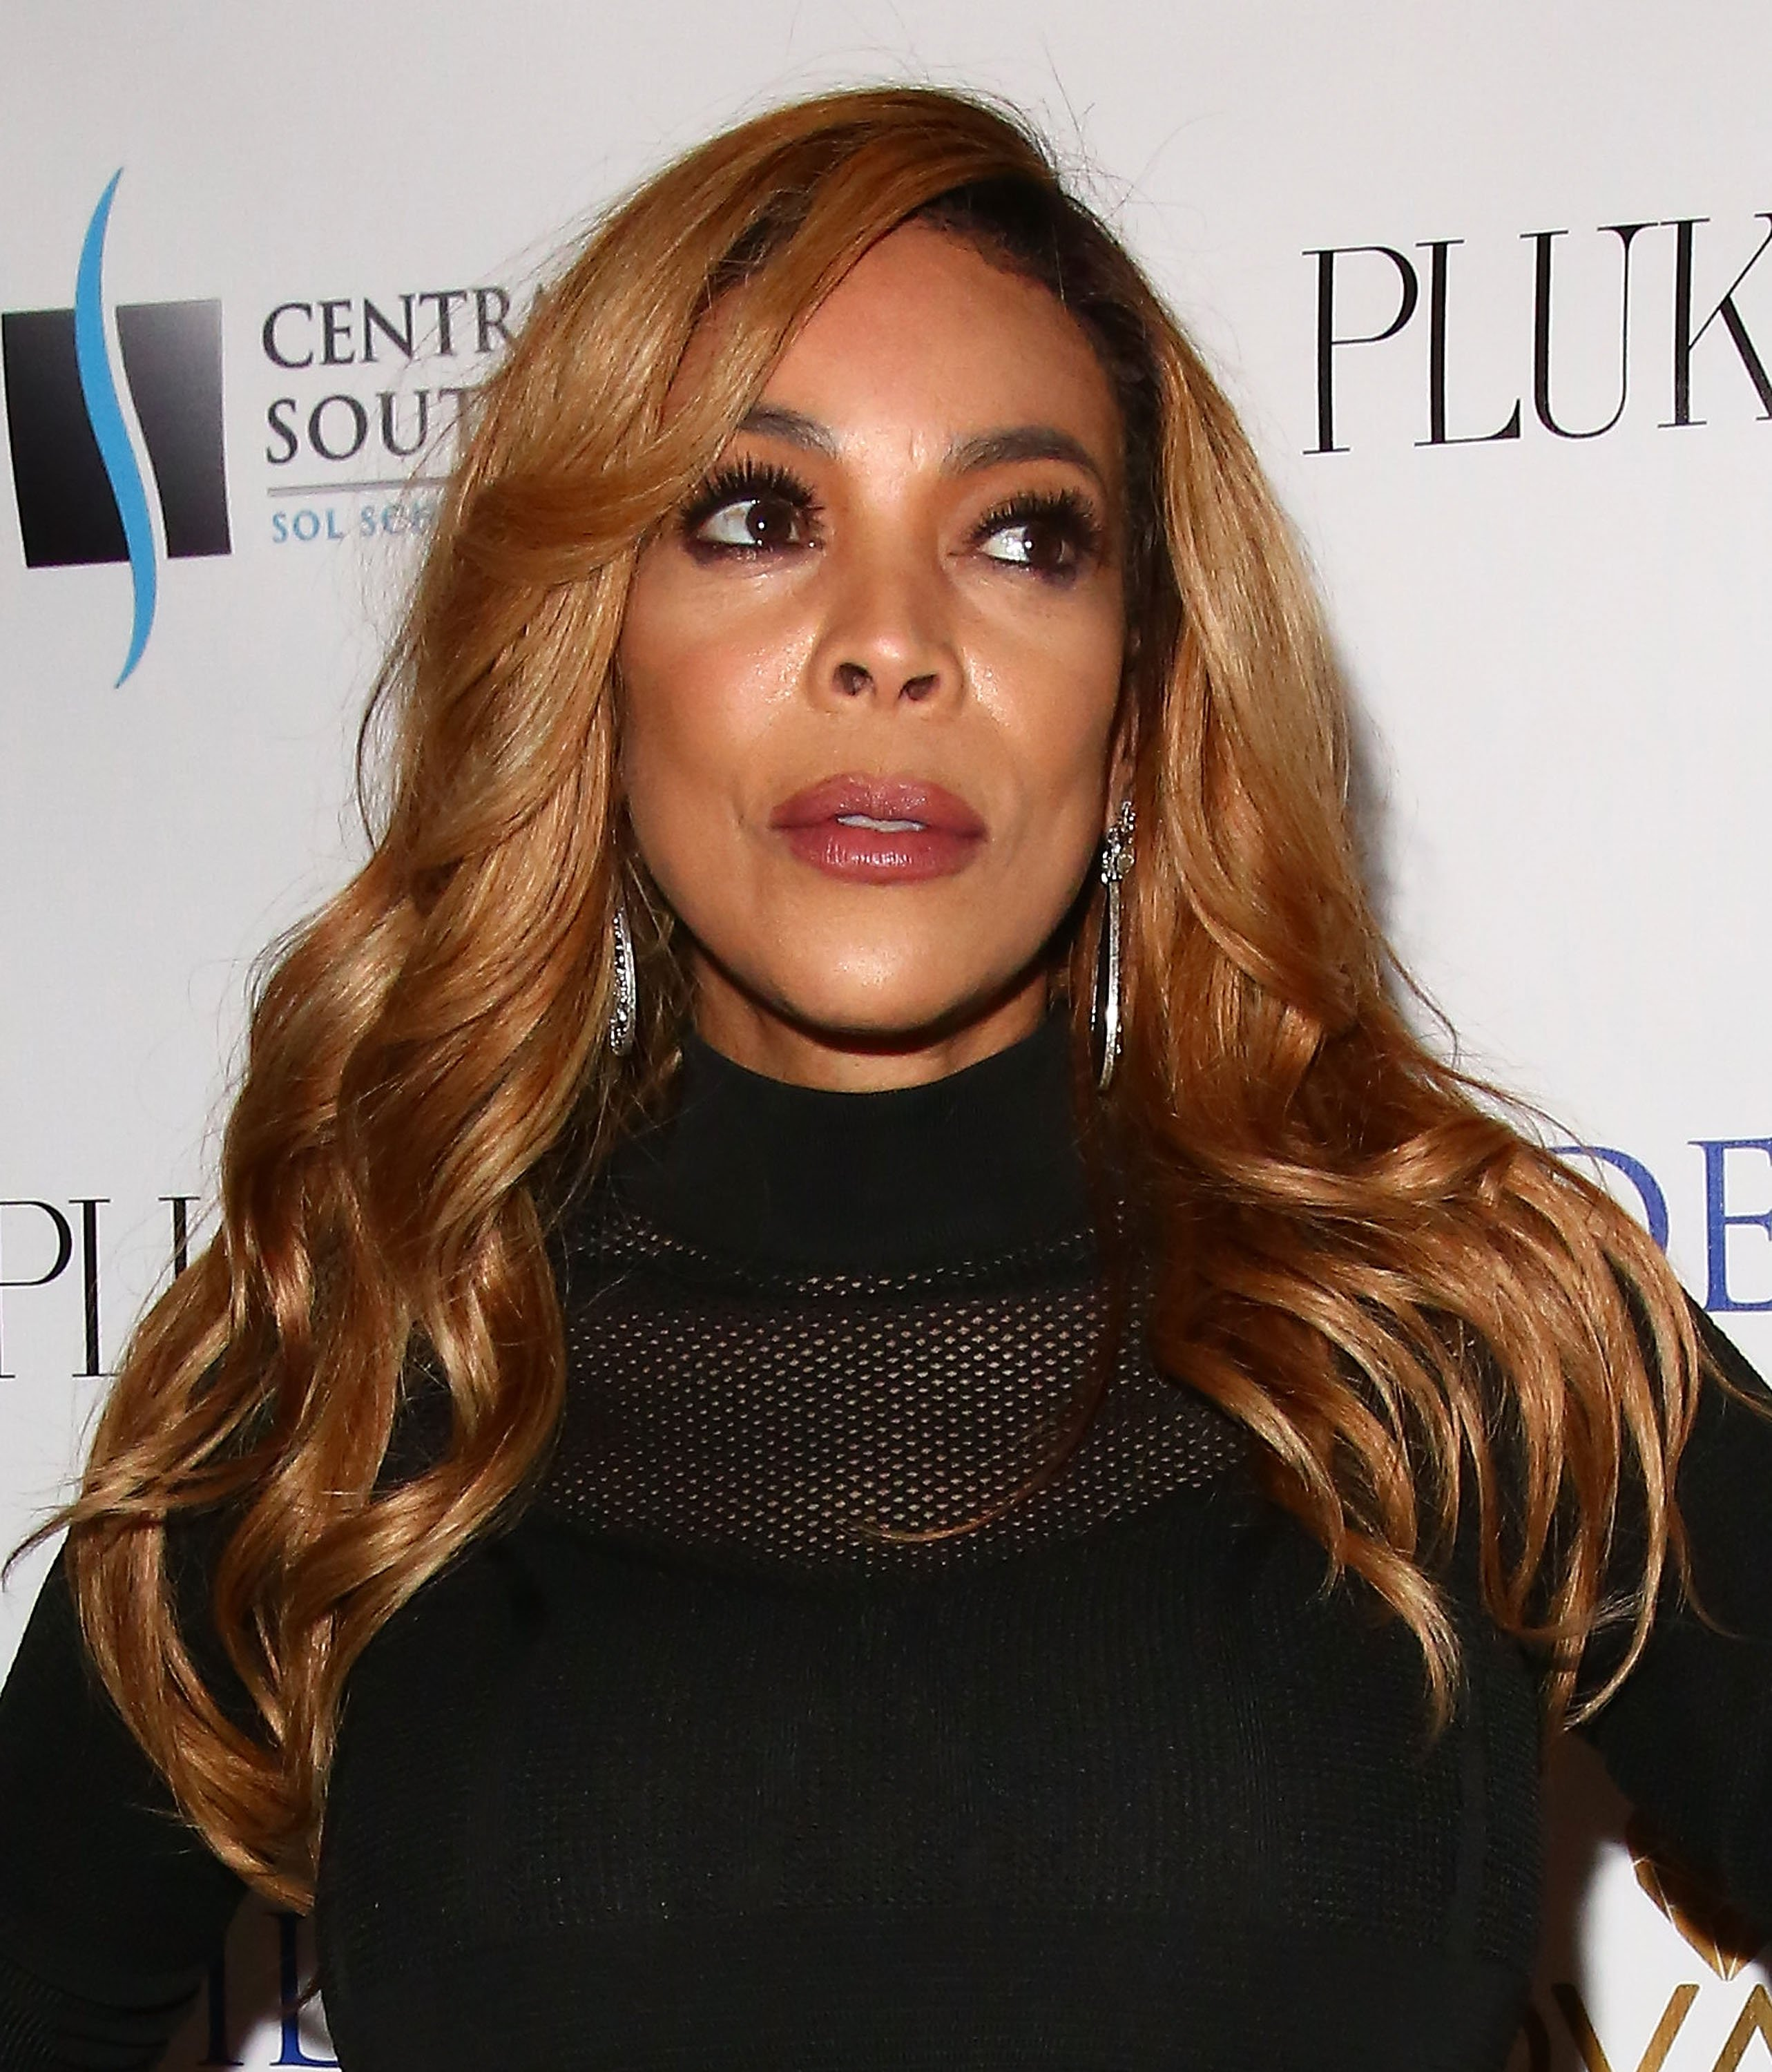 Wendy Williams attends Resident Magazine celebration on April 12, 2017 in New York City | Photo: Getty Images